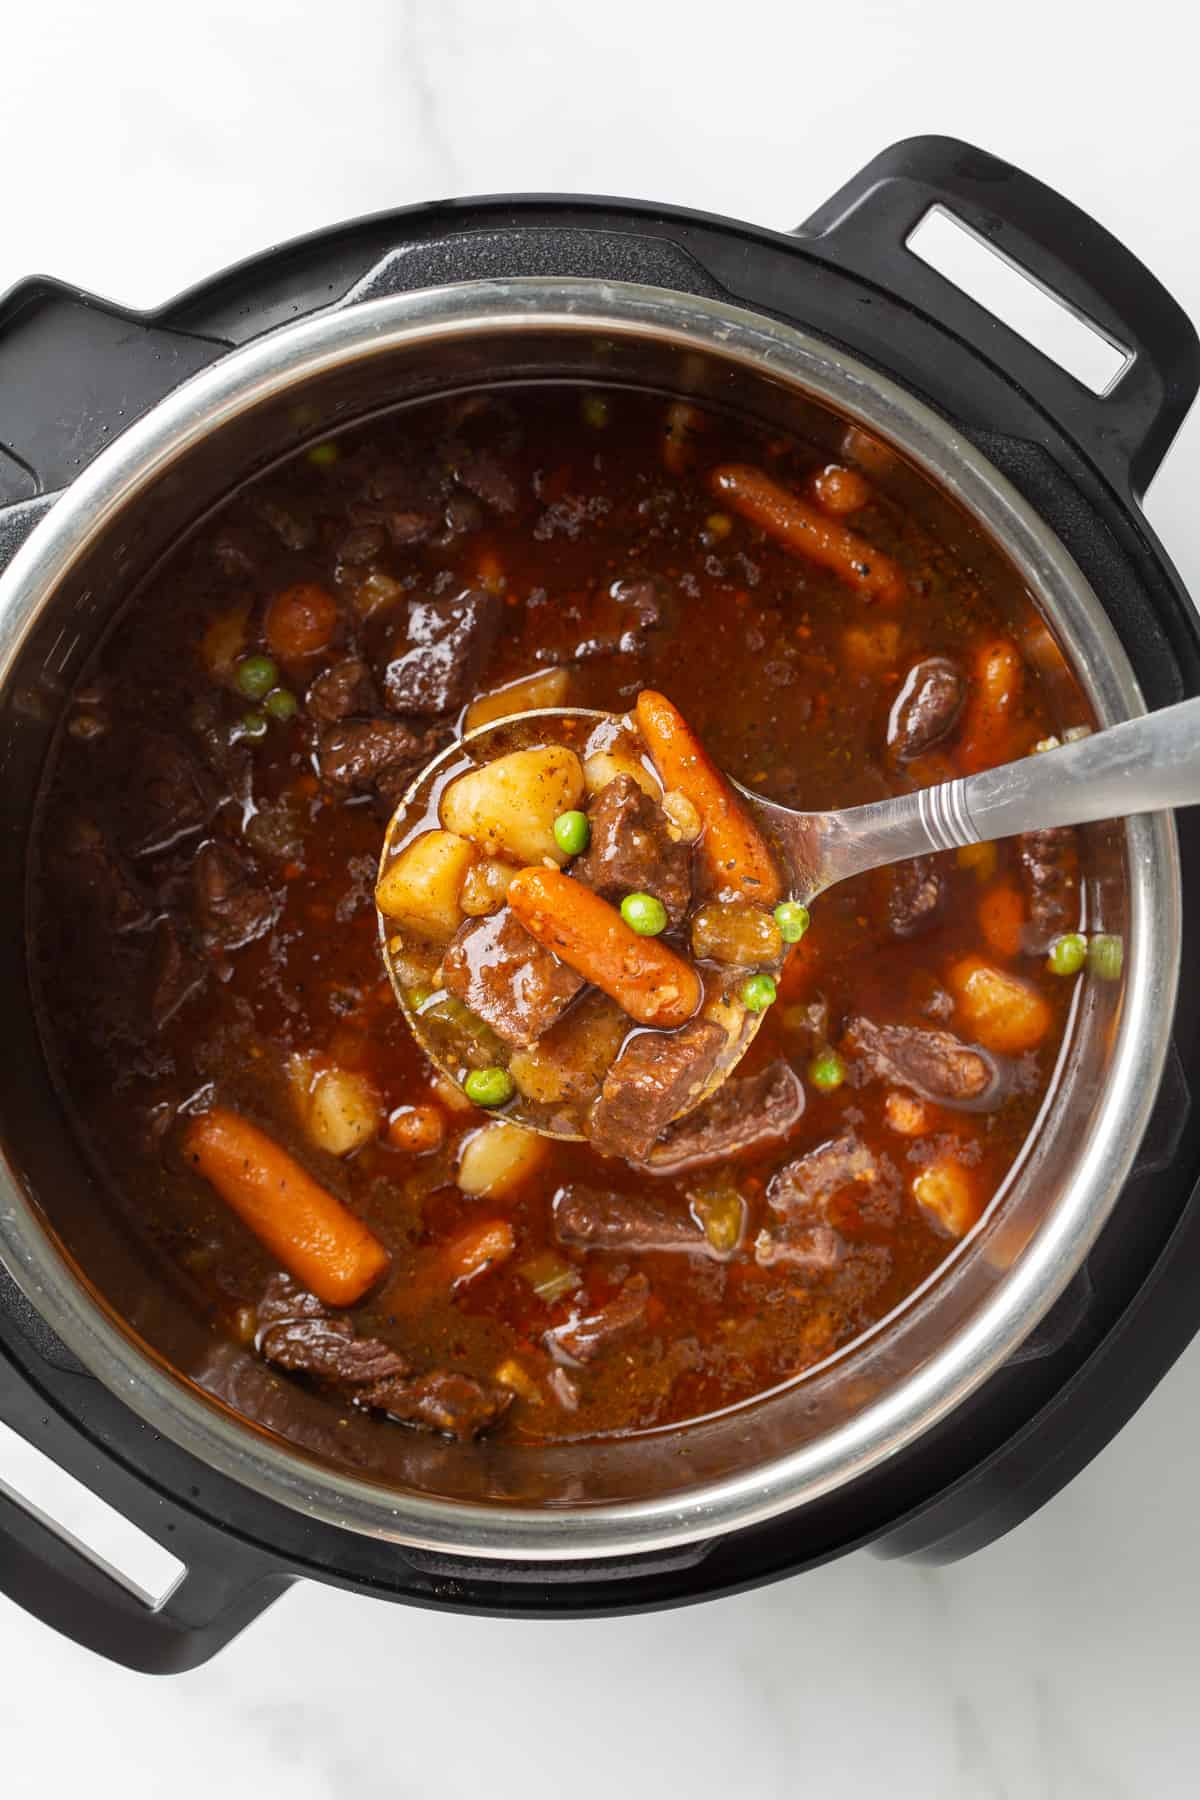 Overhead view of a stainless ladle ladling beef stew from an instant pot.